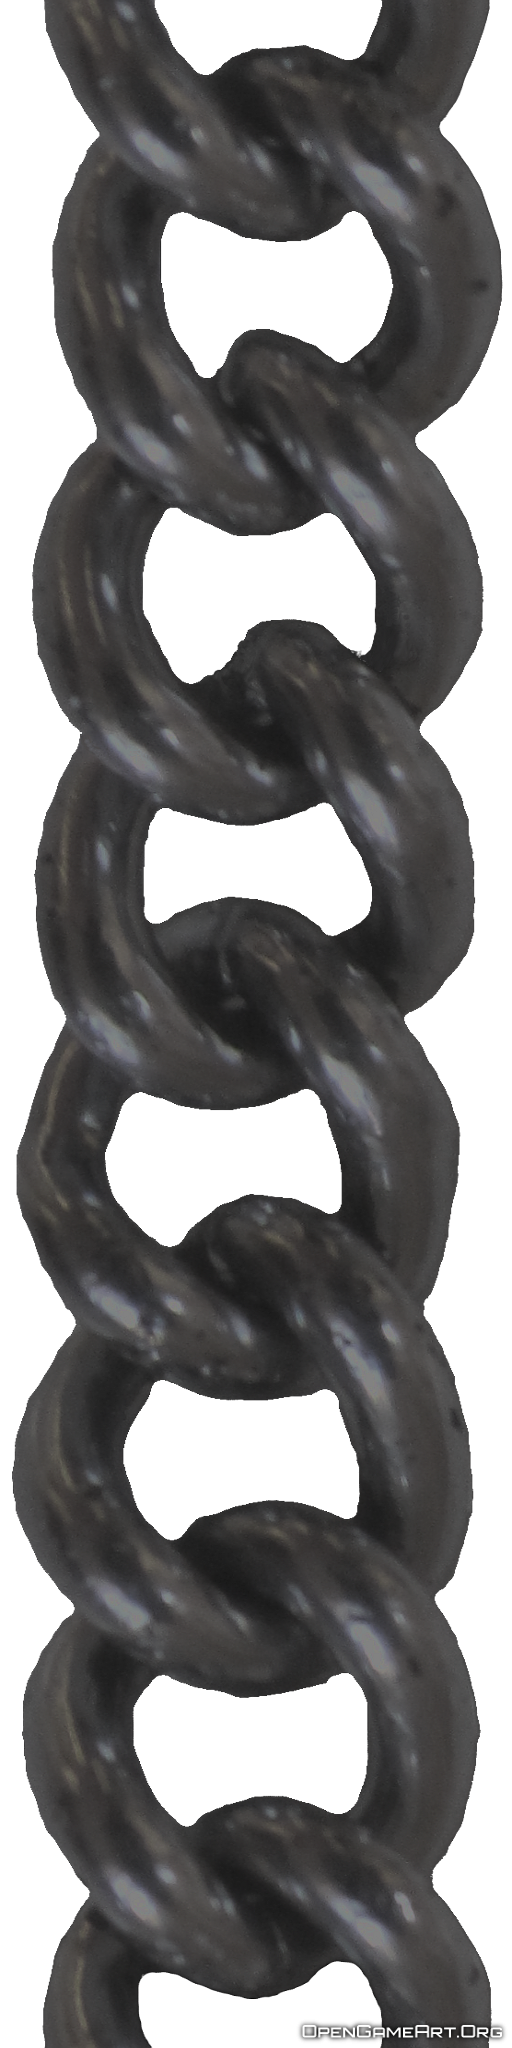 Black chain PNG image